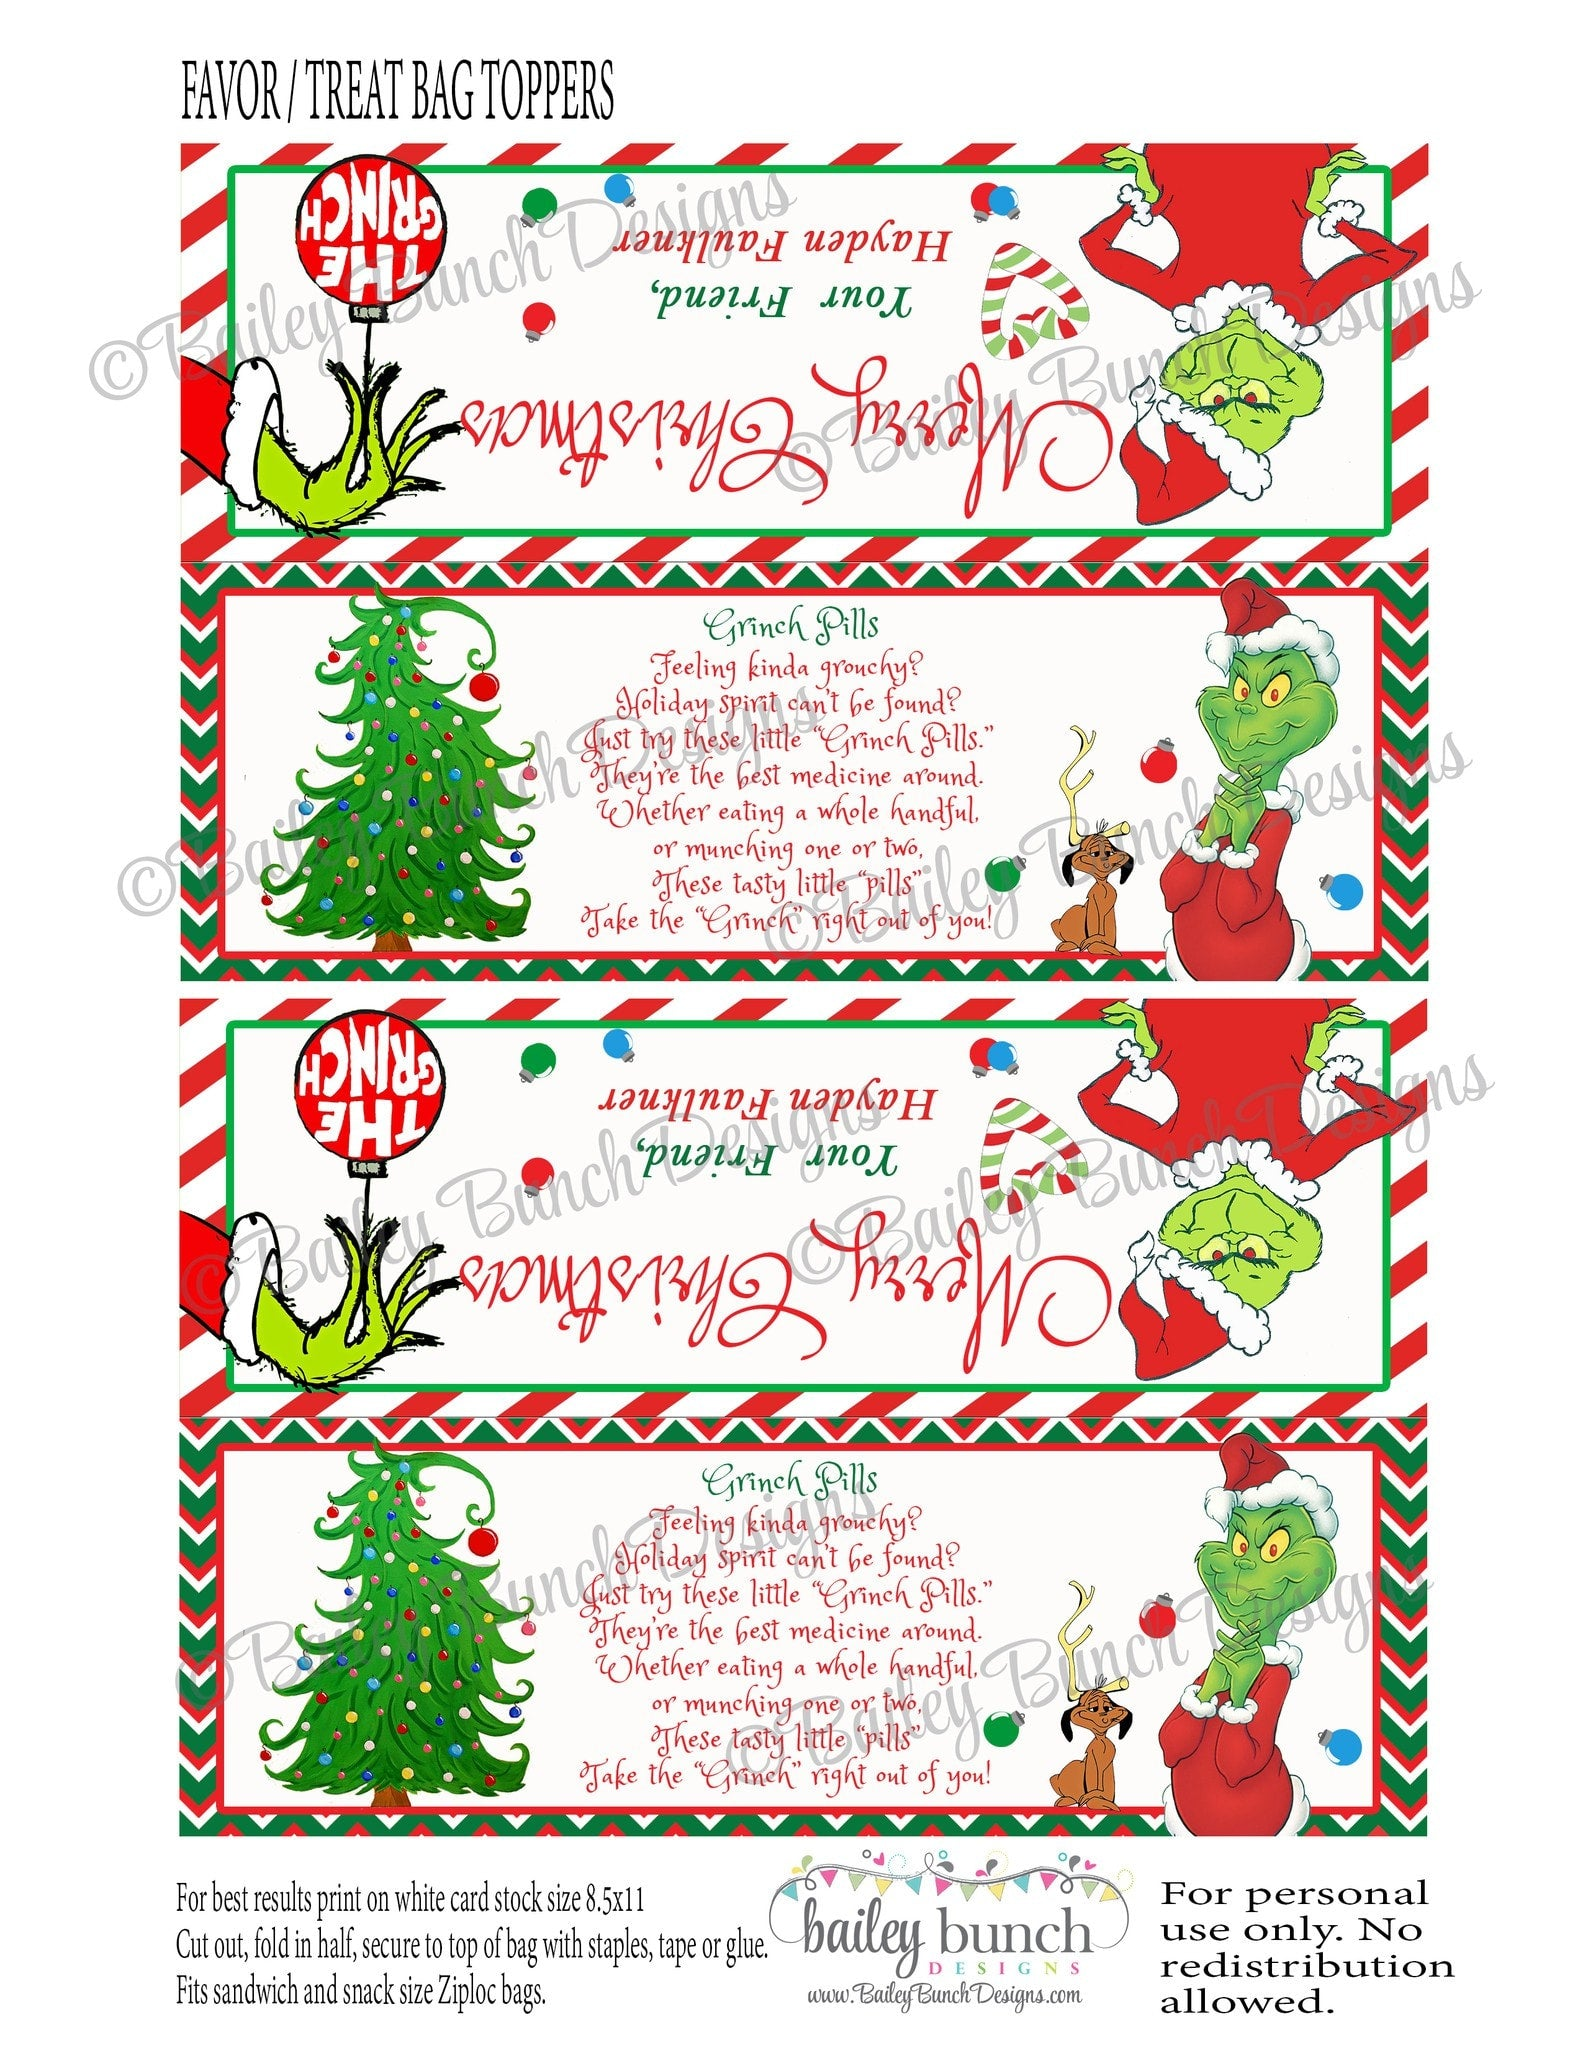 It's just an image of Massif Grinch Pills Printable